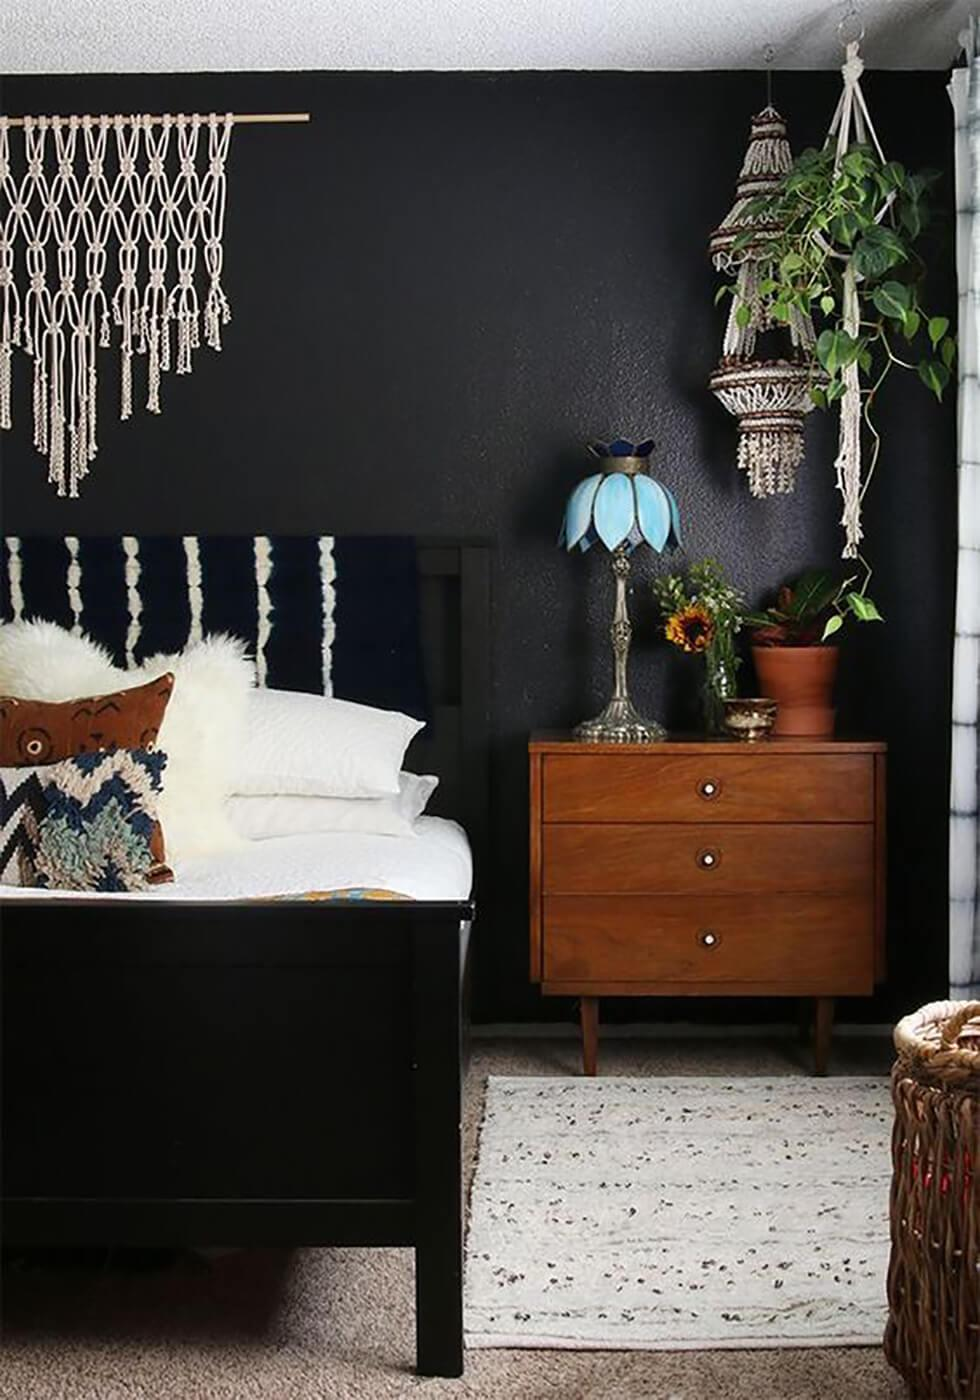 Black and white bedroom in a modern boho style with a black feature wall.